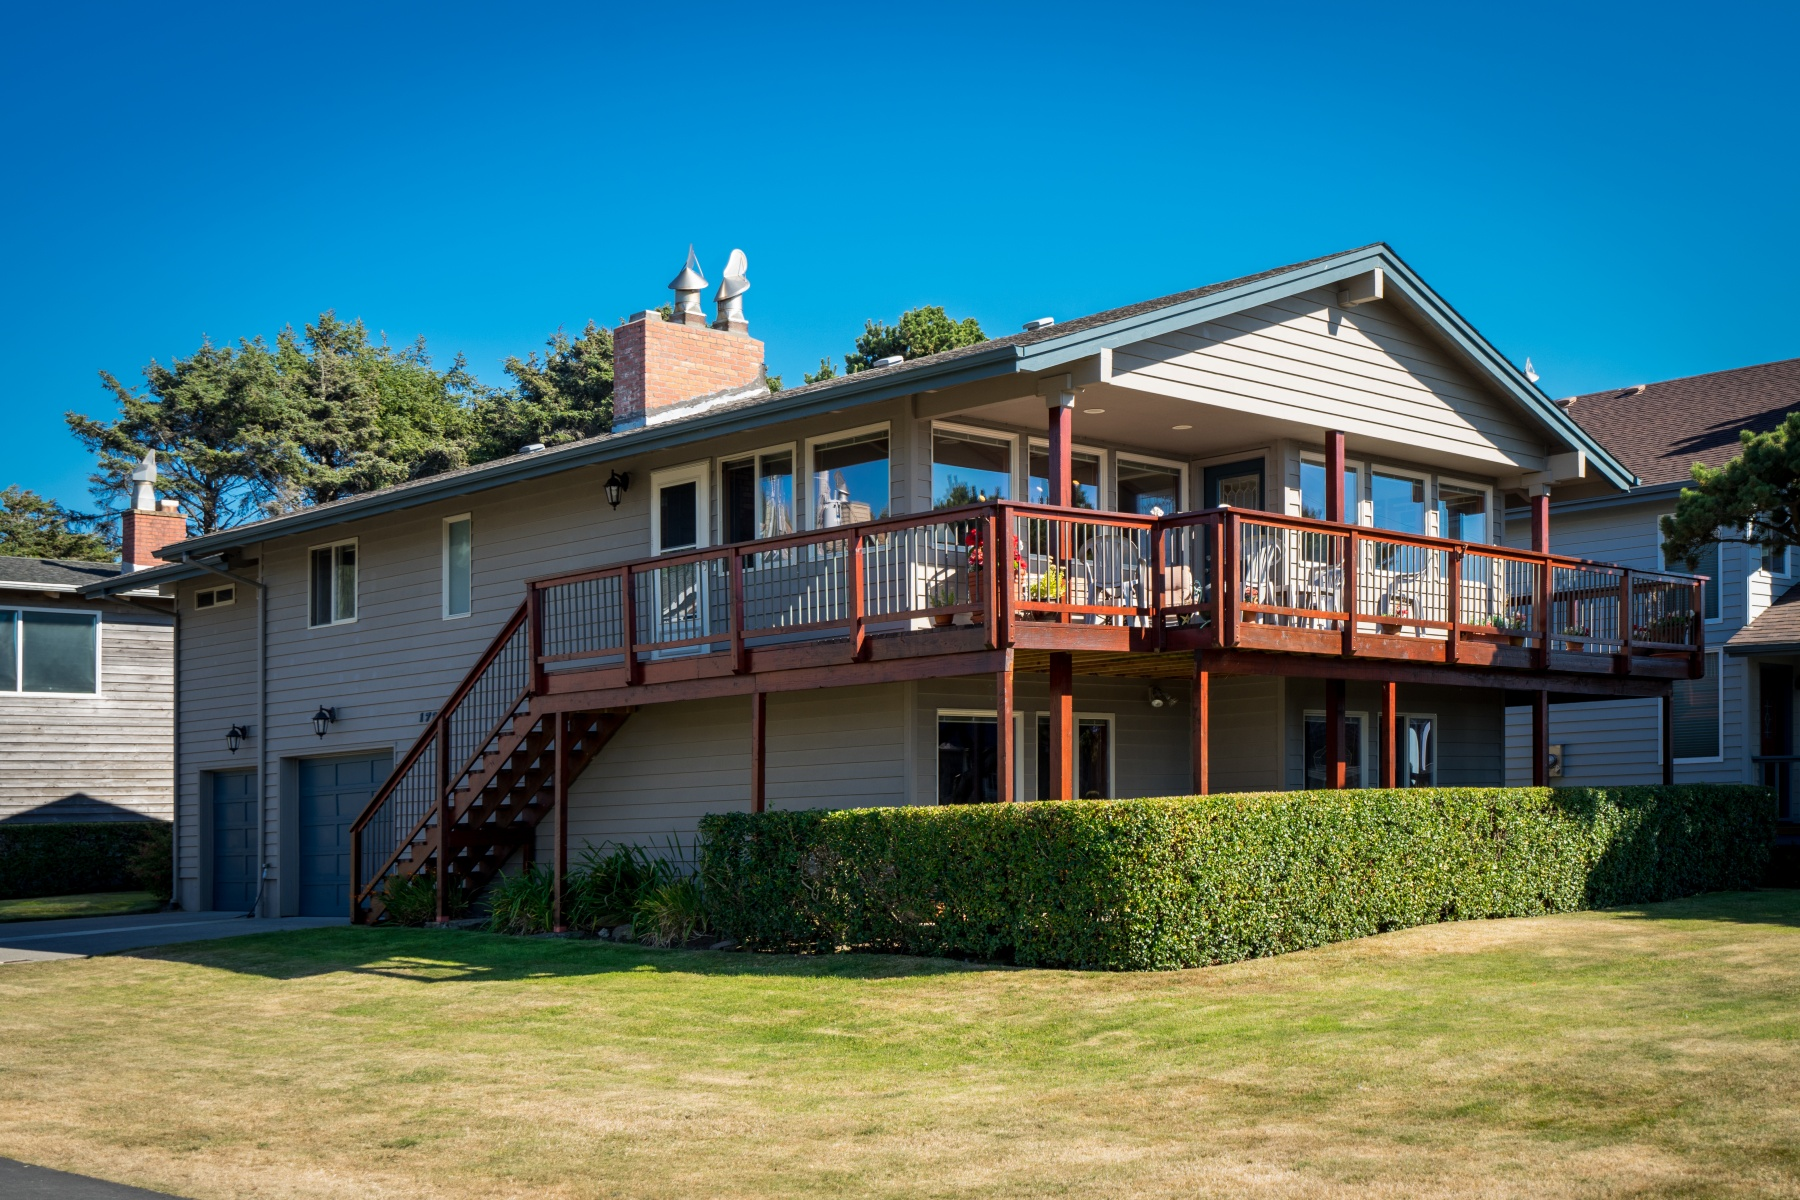 Single Family Home for Sale at 179 W Susitna ST, CANNON BEACH Cannon Beach, Oregon, 97110 United States